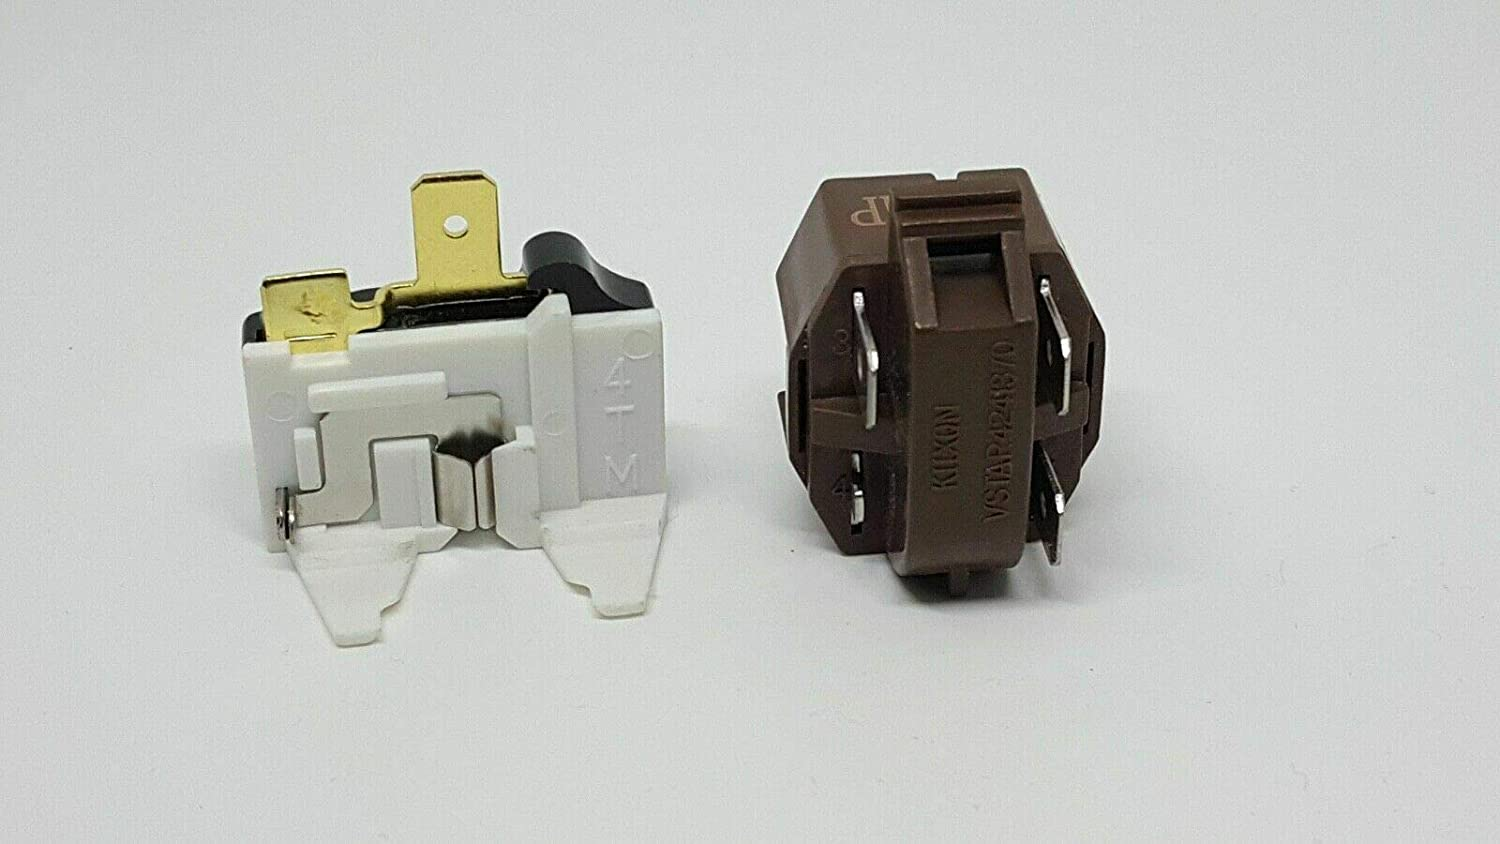 refrigerator/freezer overload relay kit for 4387913 7020935 4387766 4387836